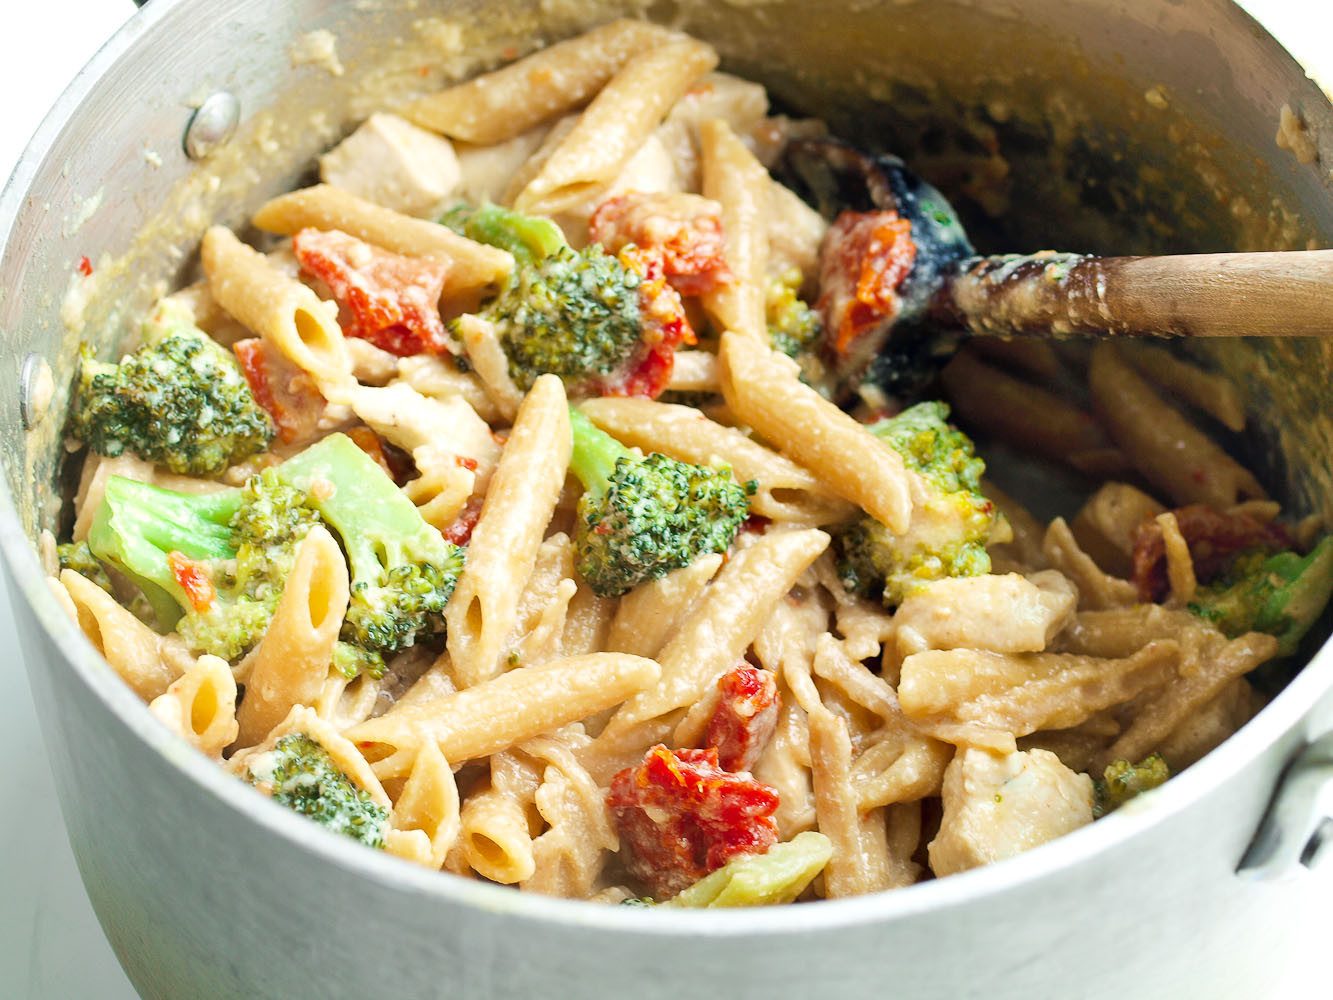 Healthy Chicken Recipes For Kids  Tangy e Pot Chicken and Veggie Pasta Dinner